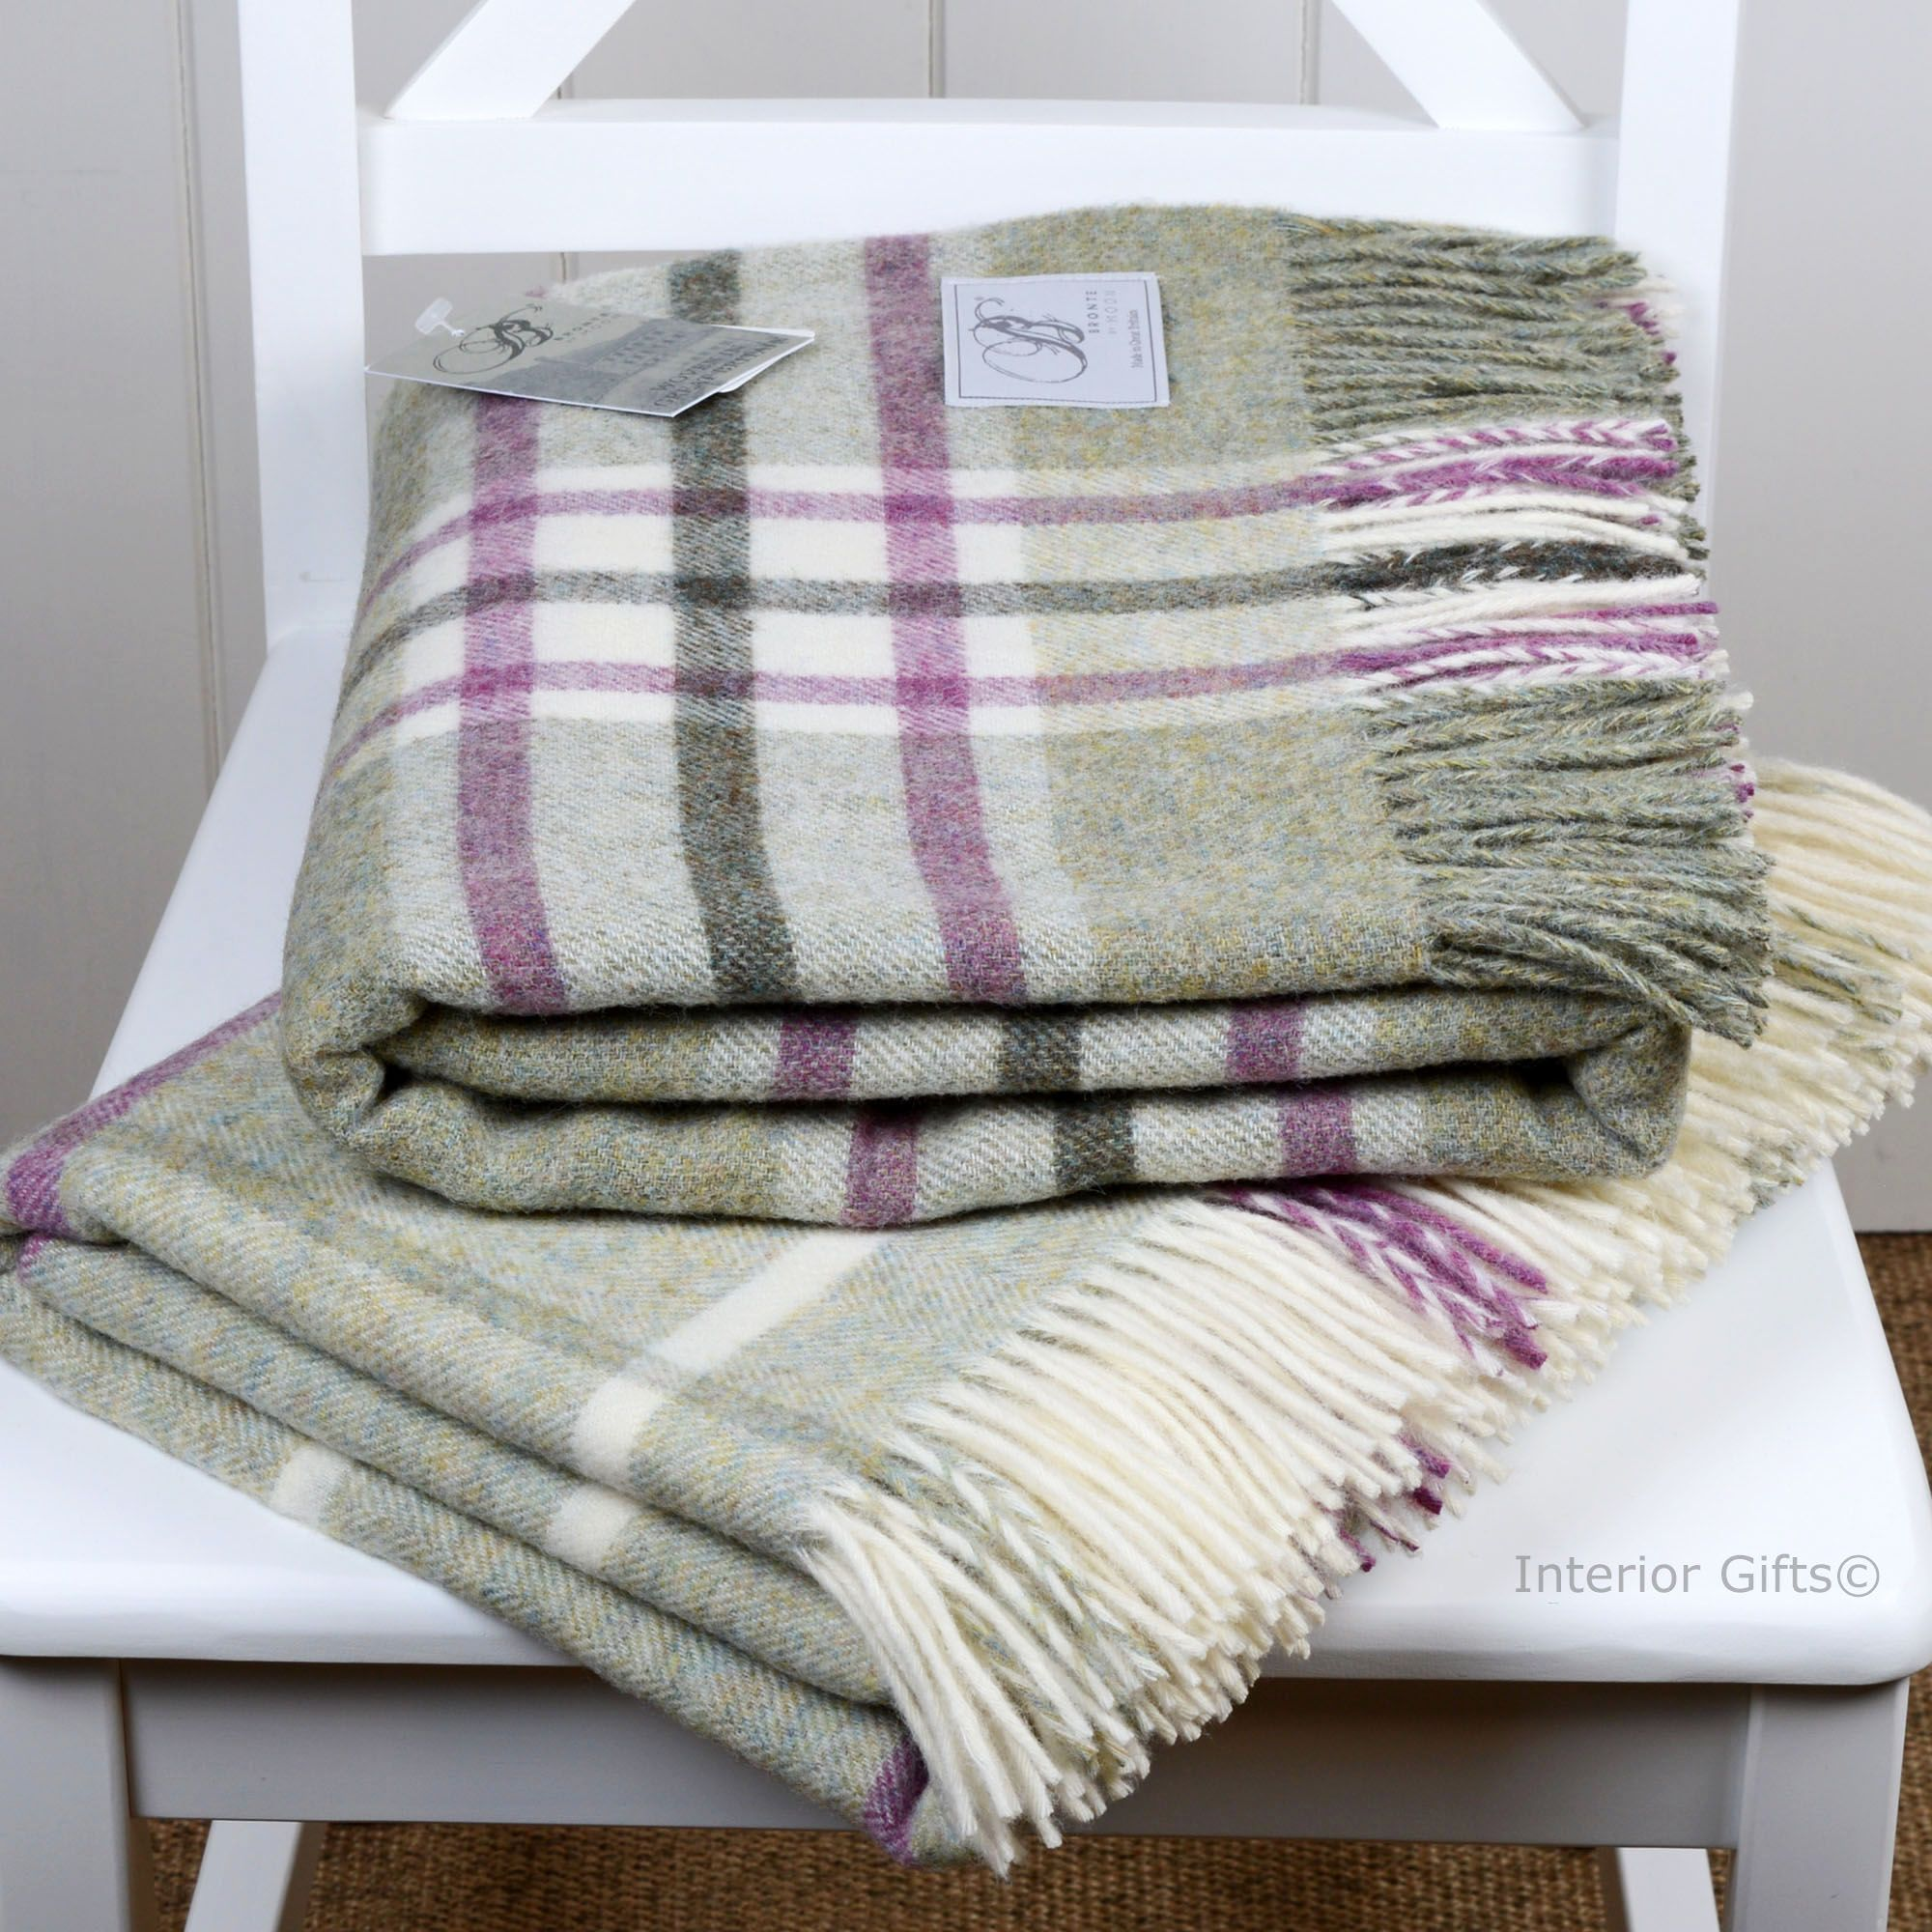 Bronte Throws in Country House Styles